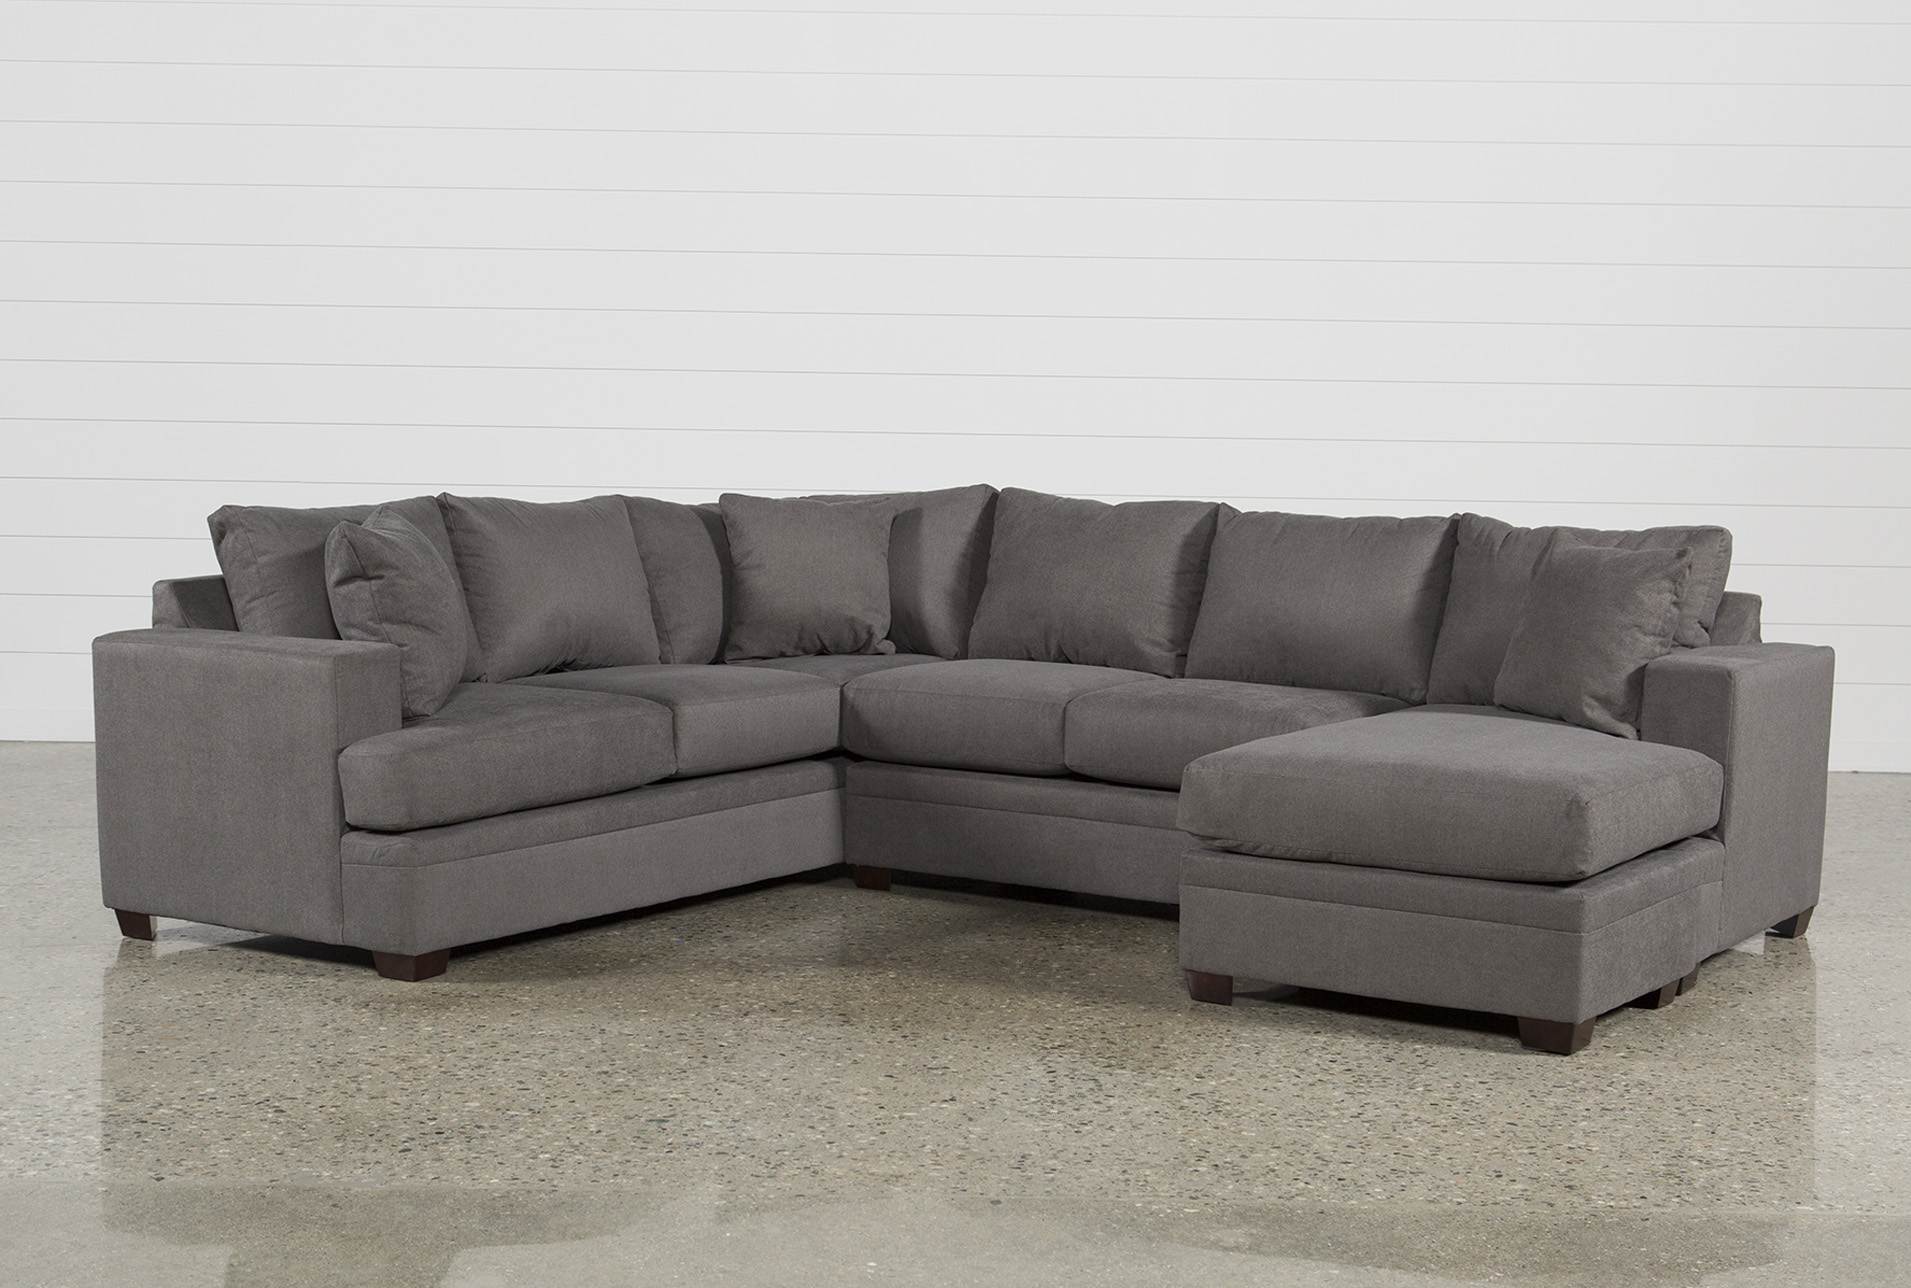 Exceptional Kerri 2 Piece Sectional W/Raf Chaise